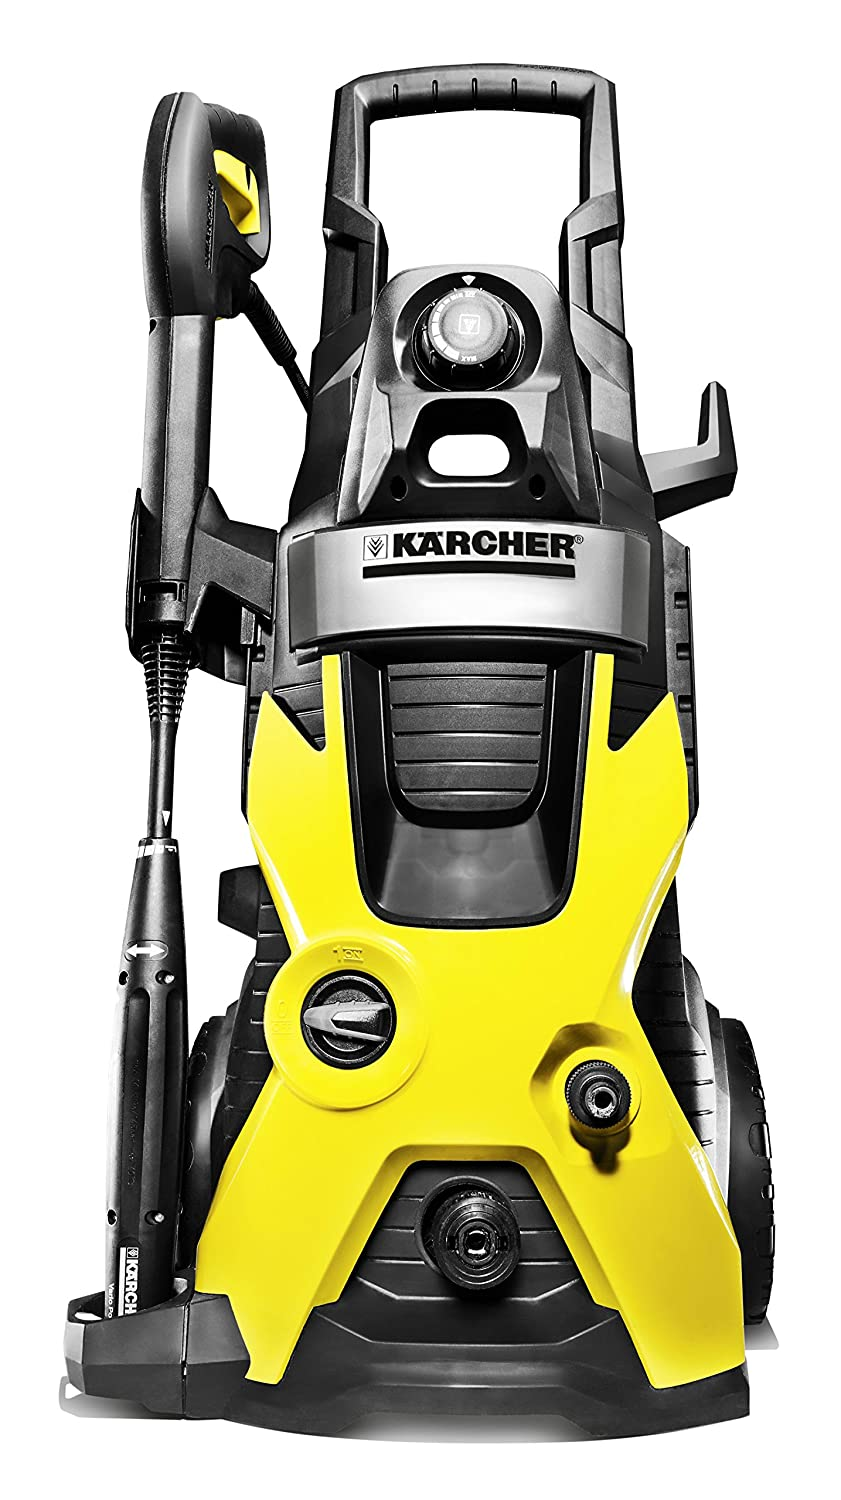 karcher pressure washer electric power pressure washer karcher k5 2000 psi 1 5 gpm 11070